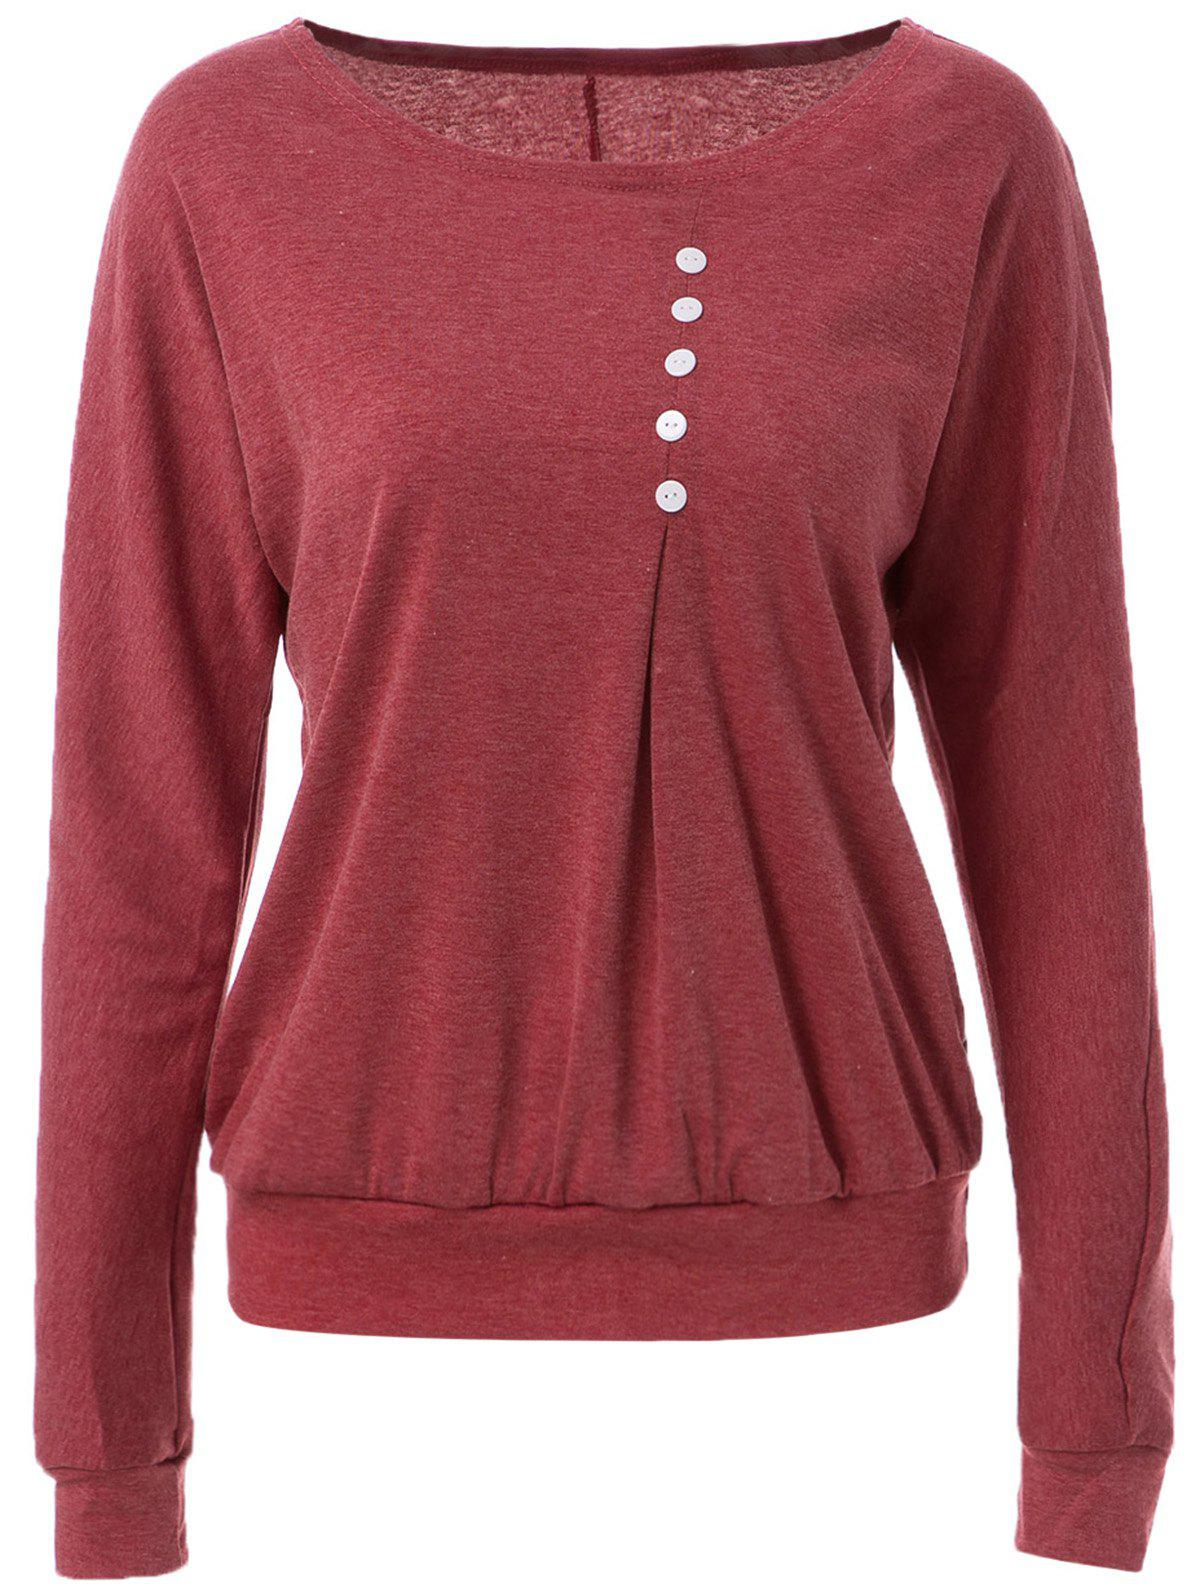 Casual Style Scoop Neck Long Batwing Sleeve Loose-Fitting Solid Color Women's T-Shirt - RED S